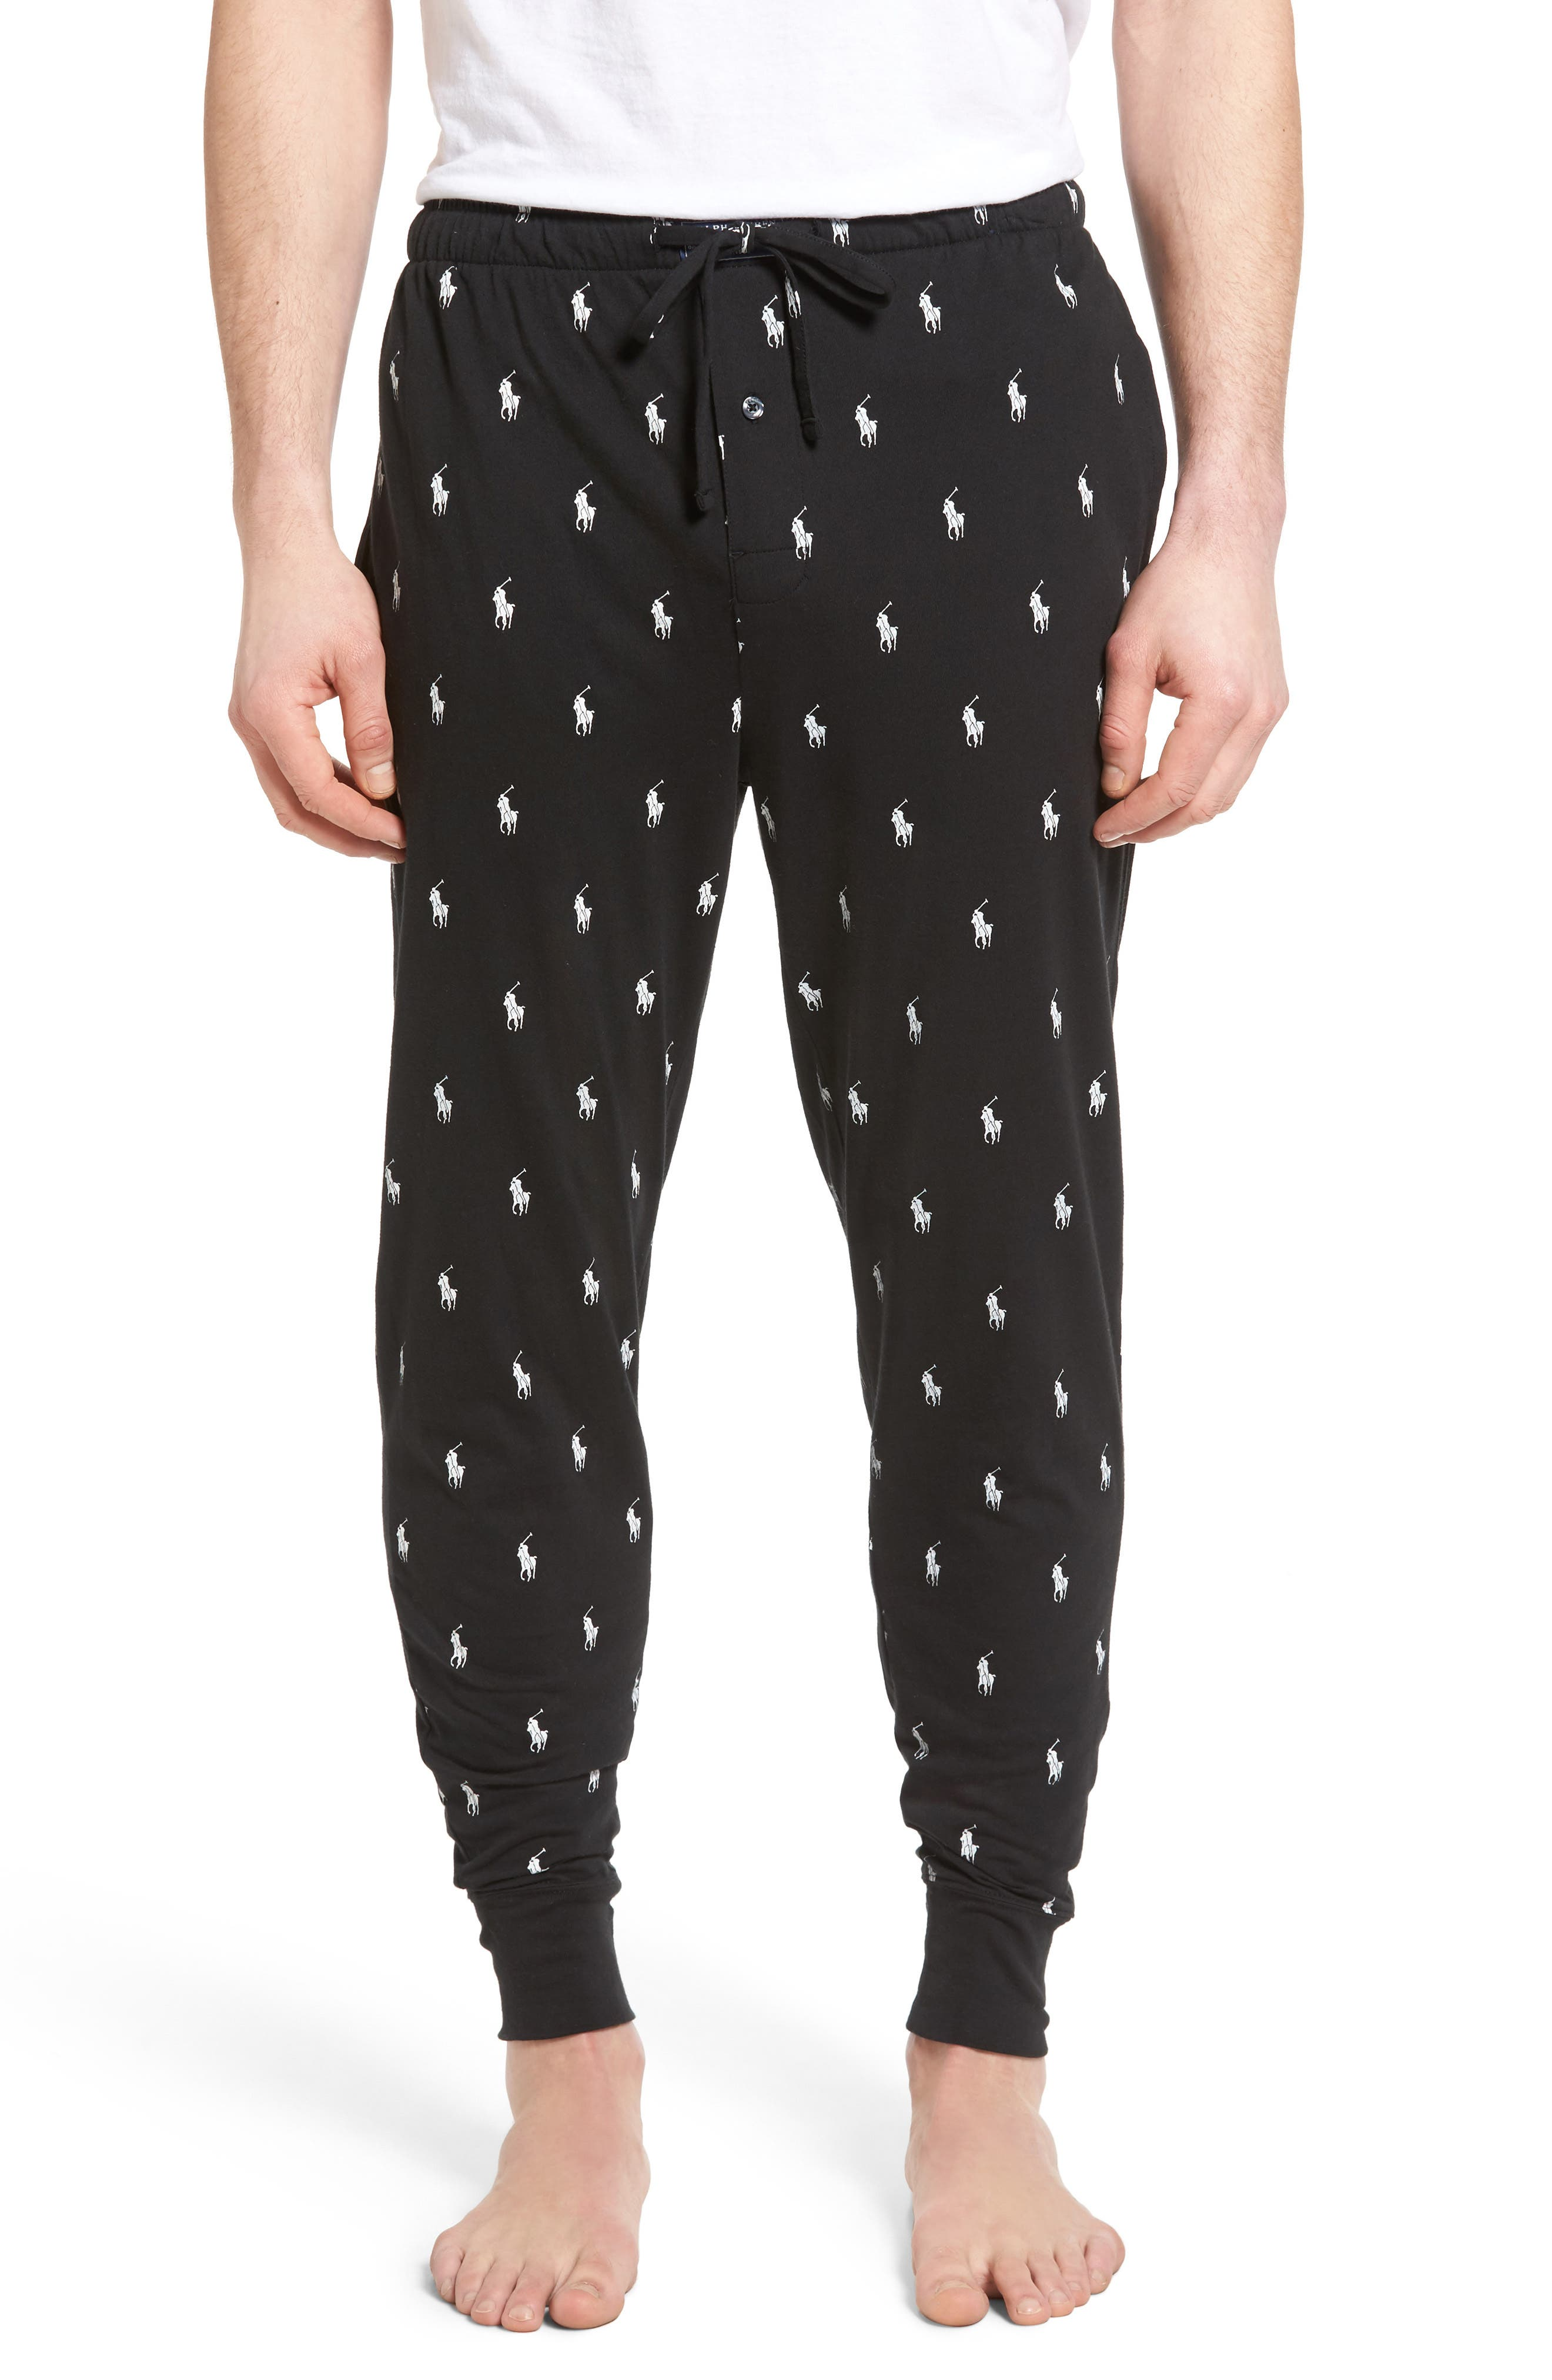 Polo Ralph Lauren Knit Pony Lounge Pants